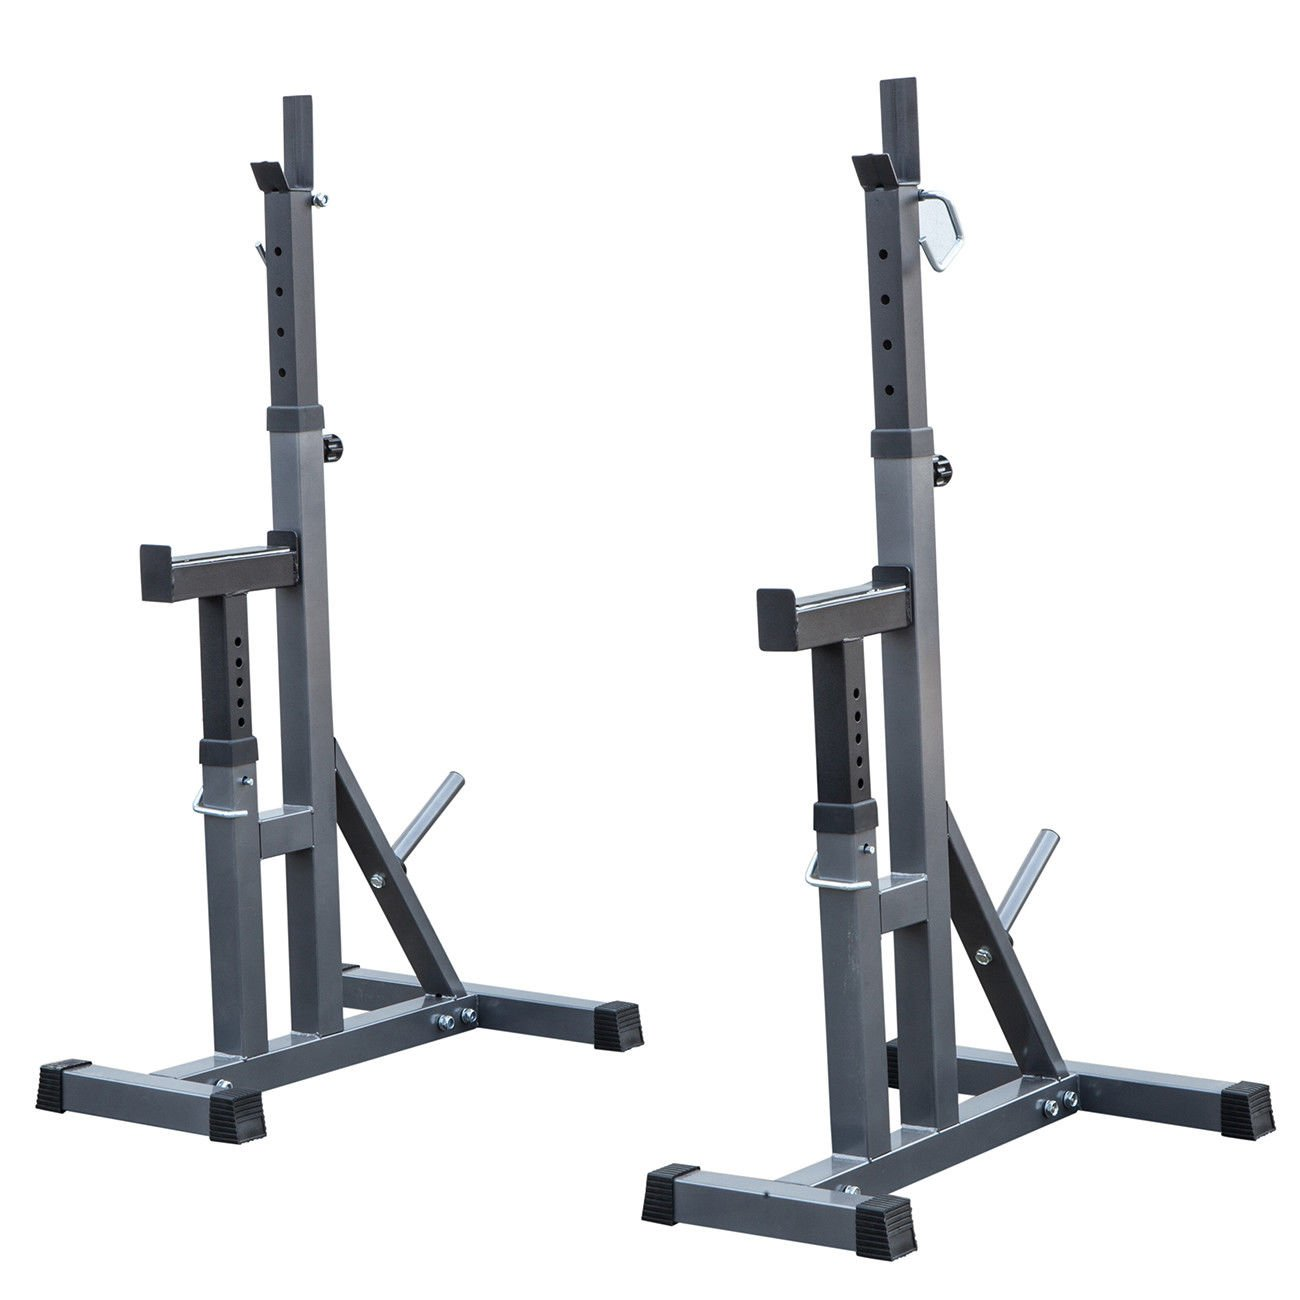 2pcs Adjustable Rack Standard Steel Squat Stands Barbell Free Press Bench w/ Peg